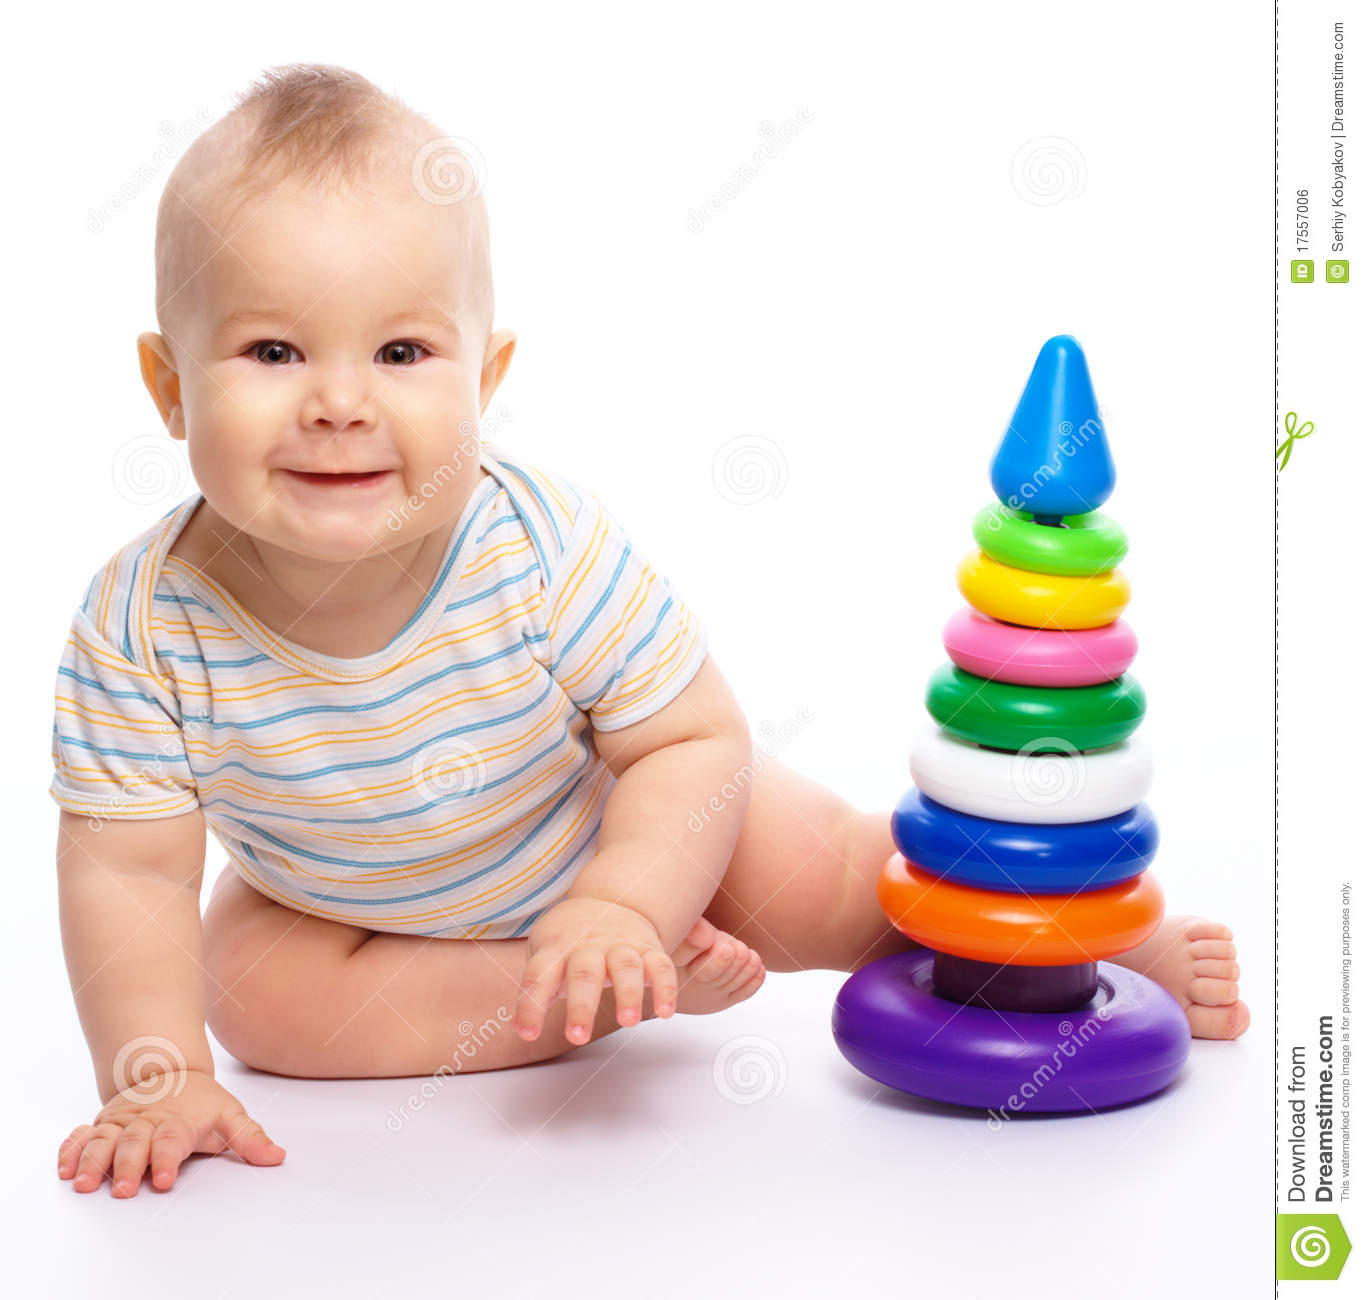 Little Boy Toys : Little boy play with toys royalty free stock image